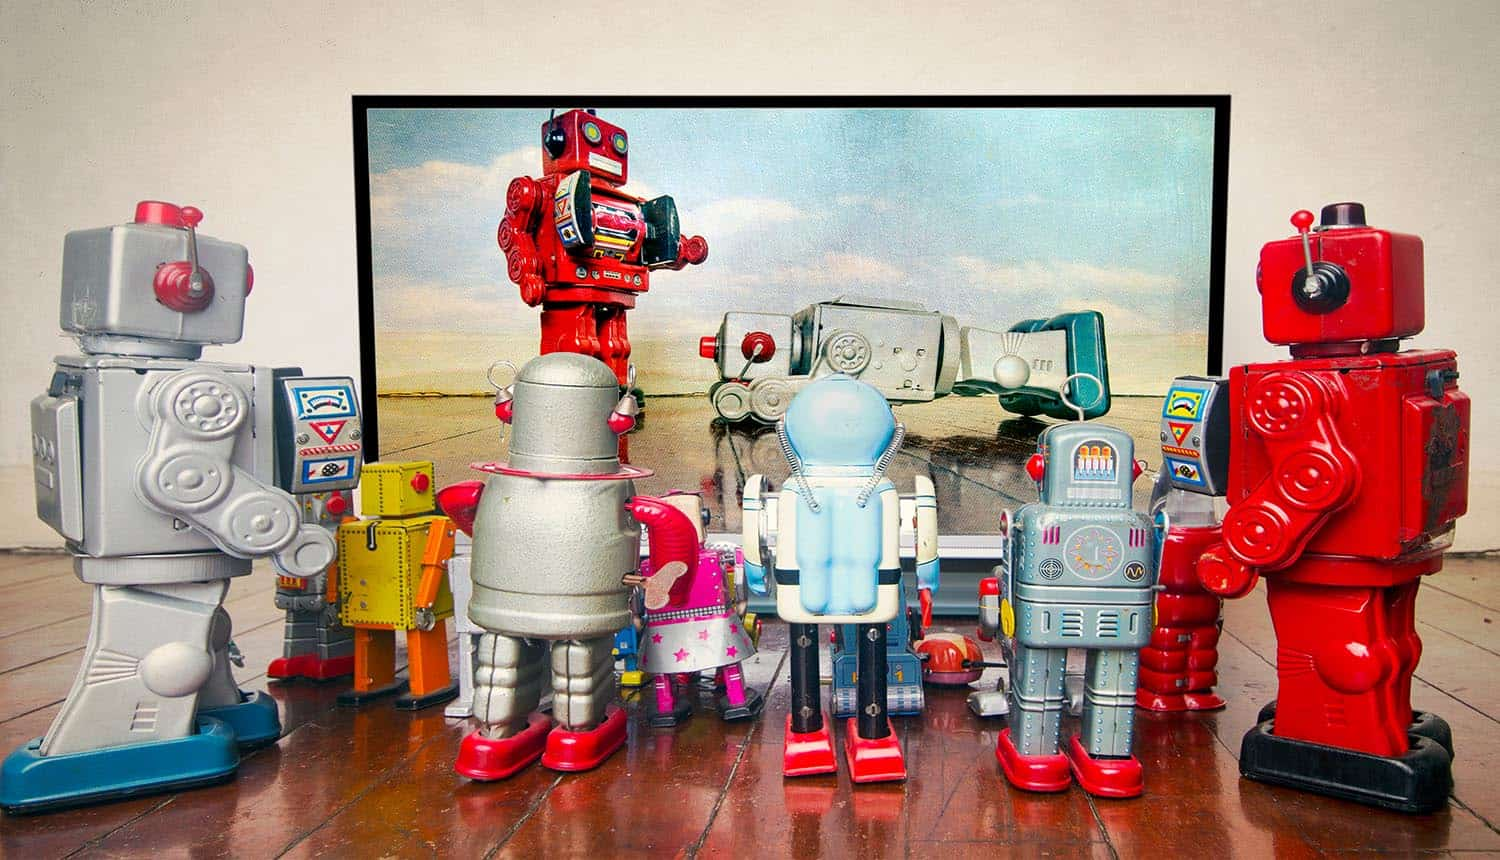 Retro robots watch bots on TV showing increase in marketing fraud